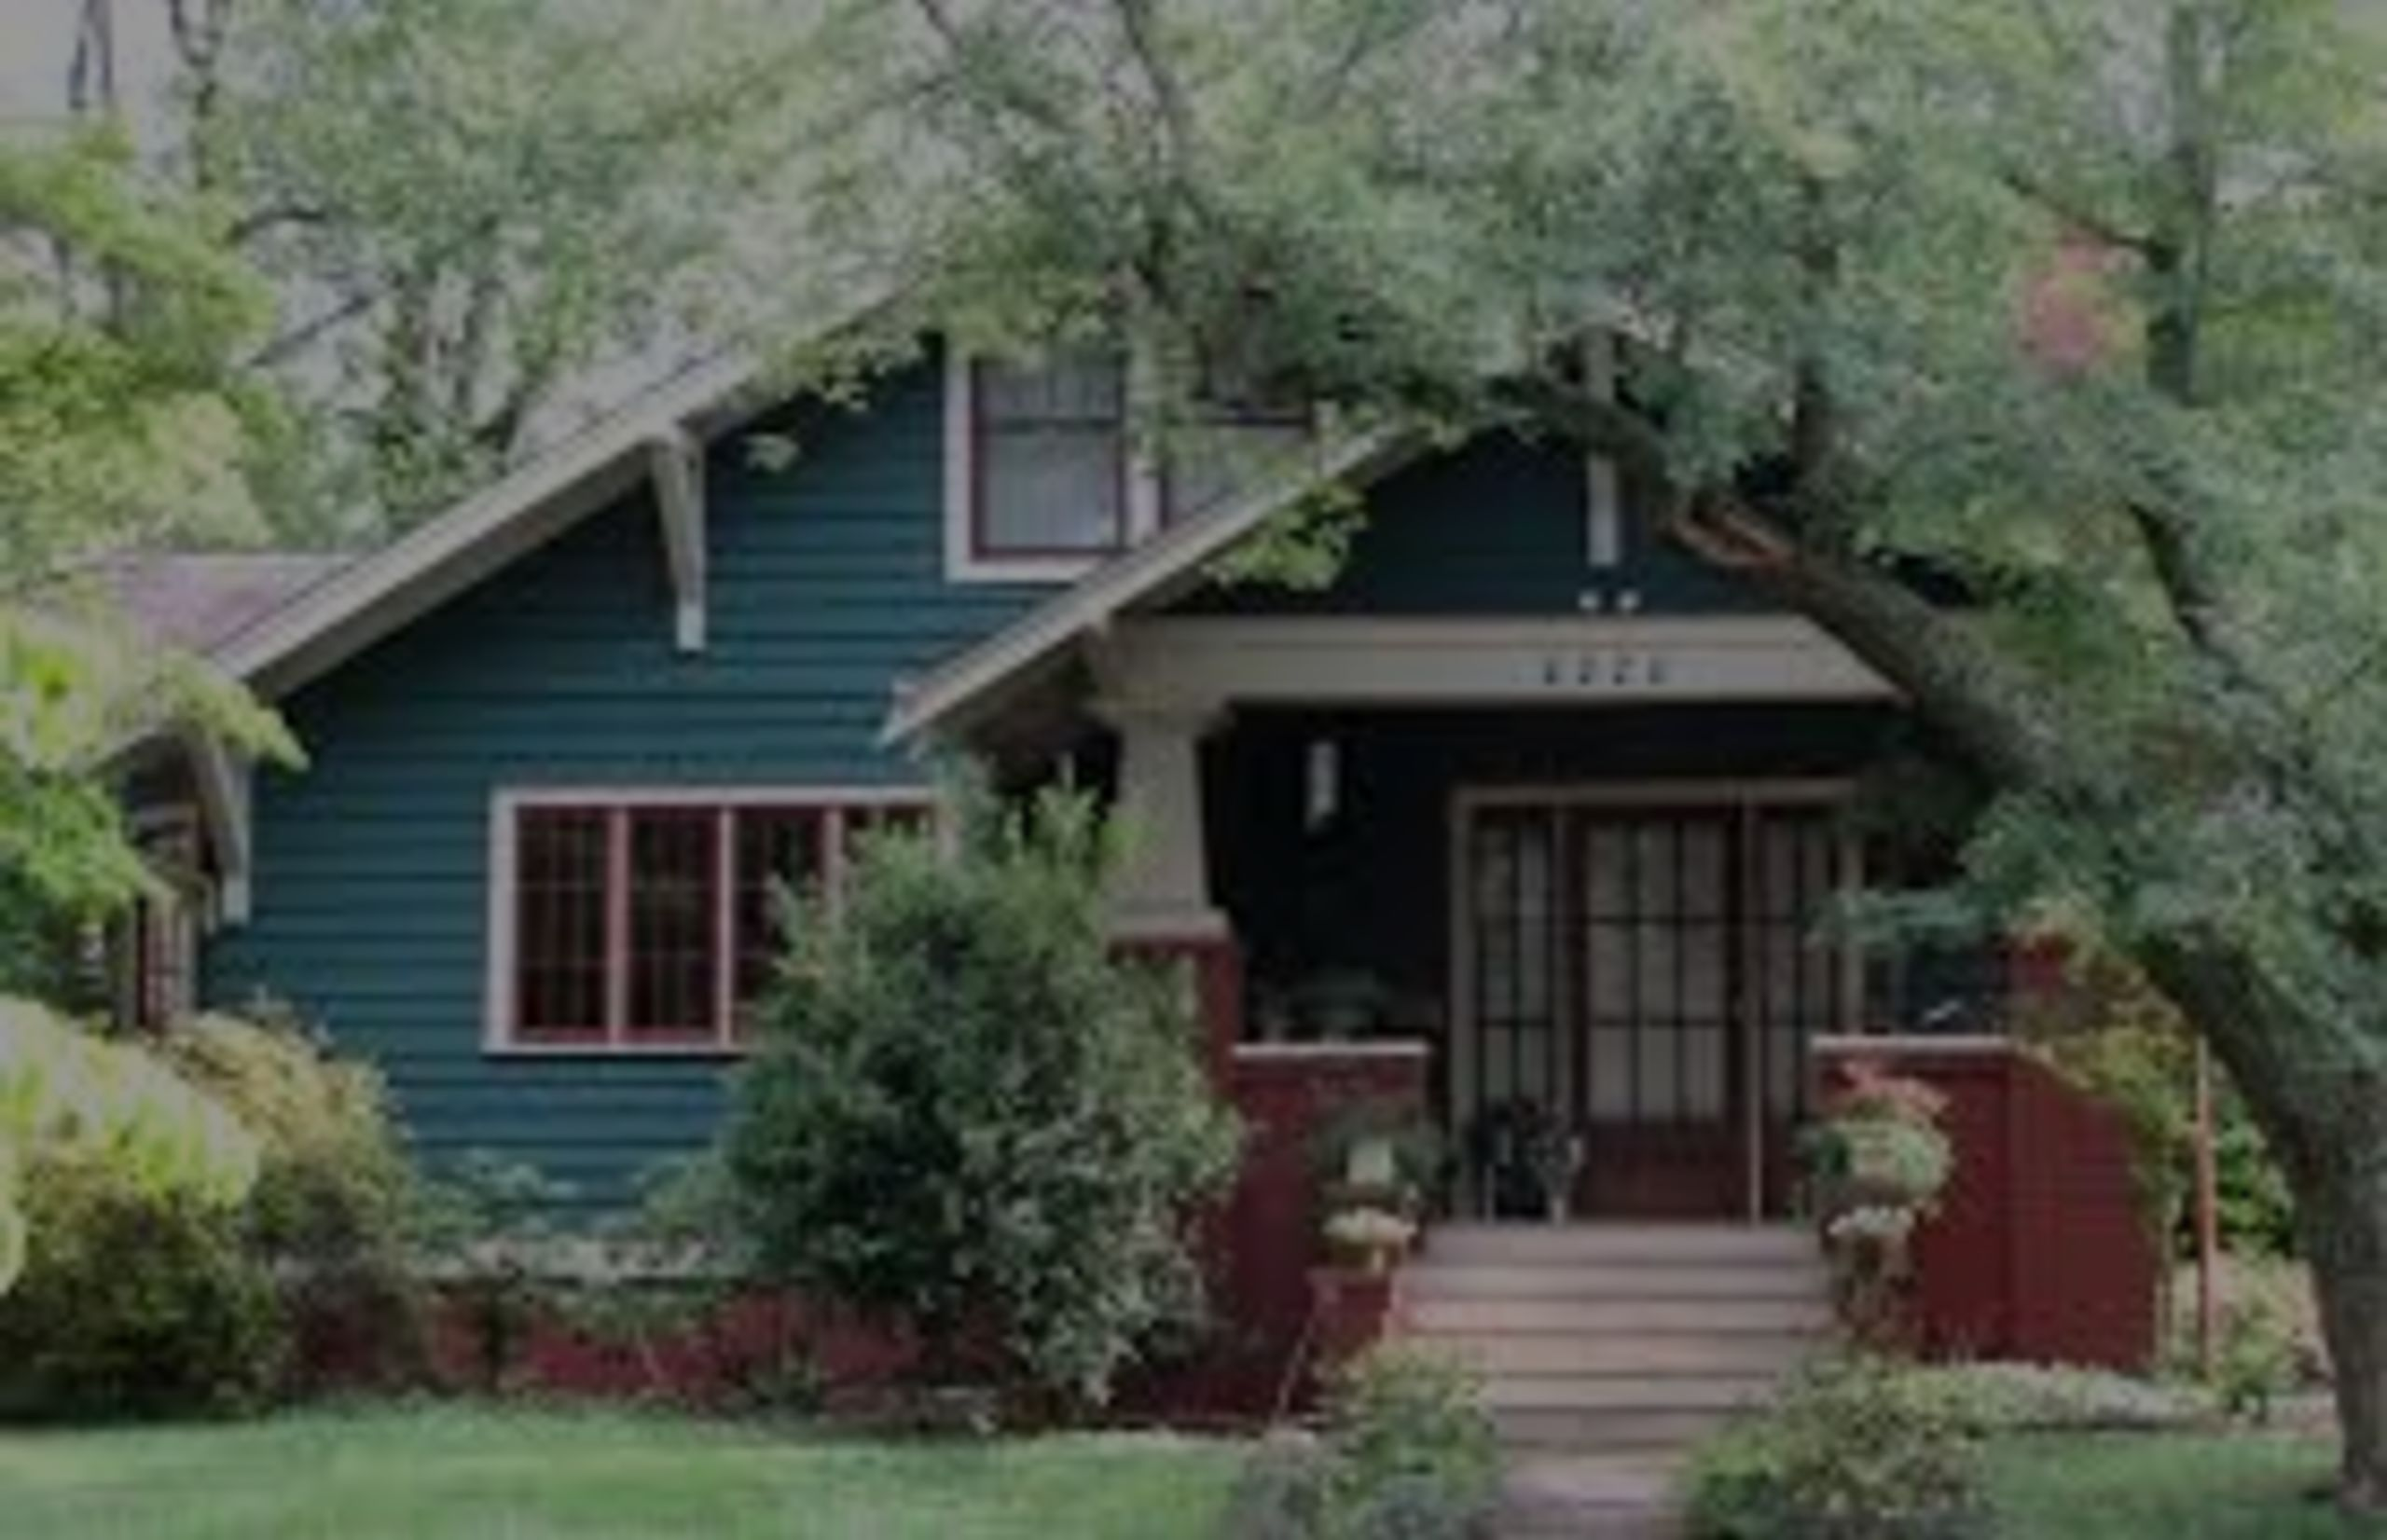 Hire the Most Experienced Dallas Texas Real Estate Agent When Selling Your Home